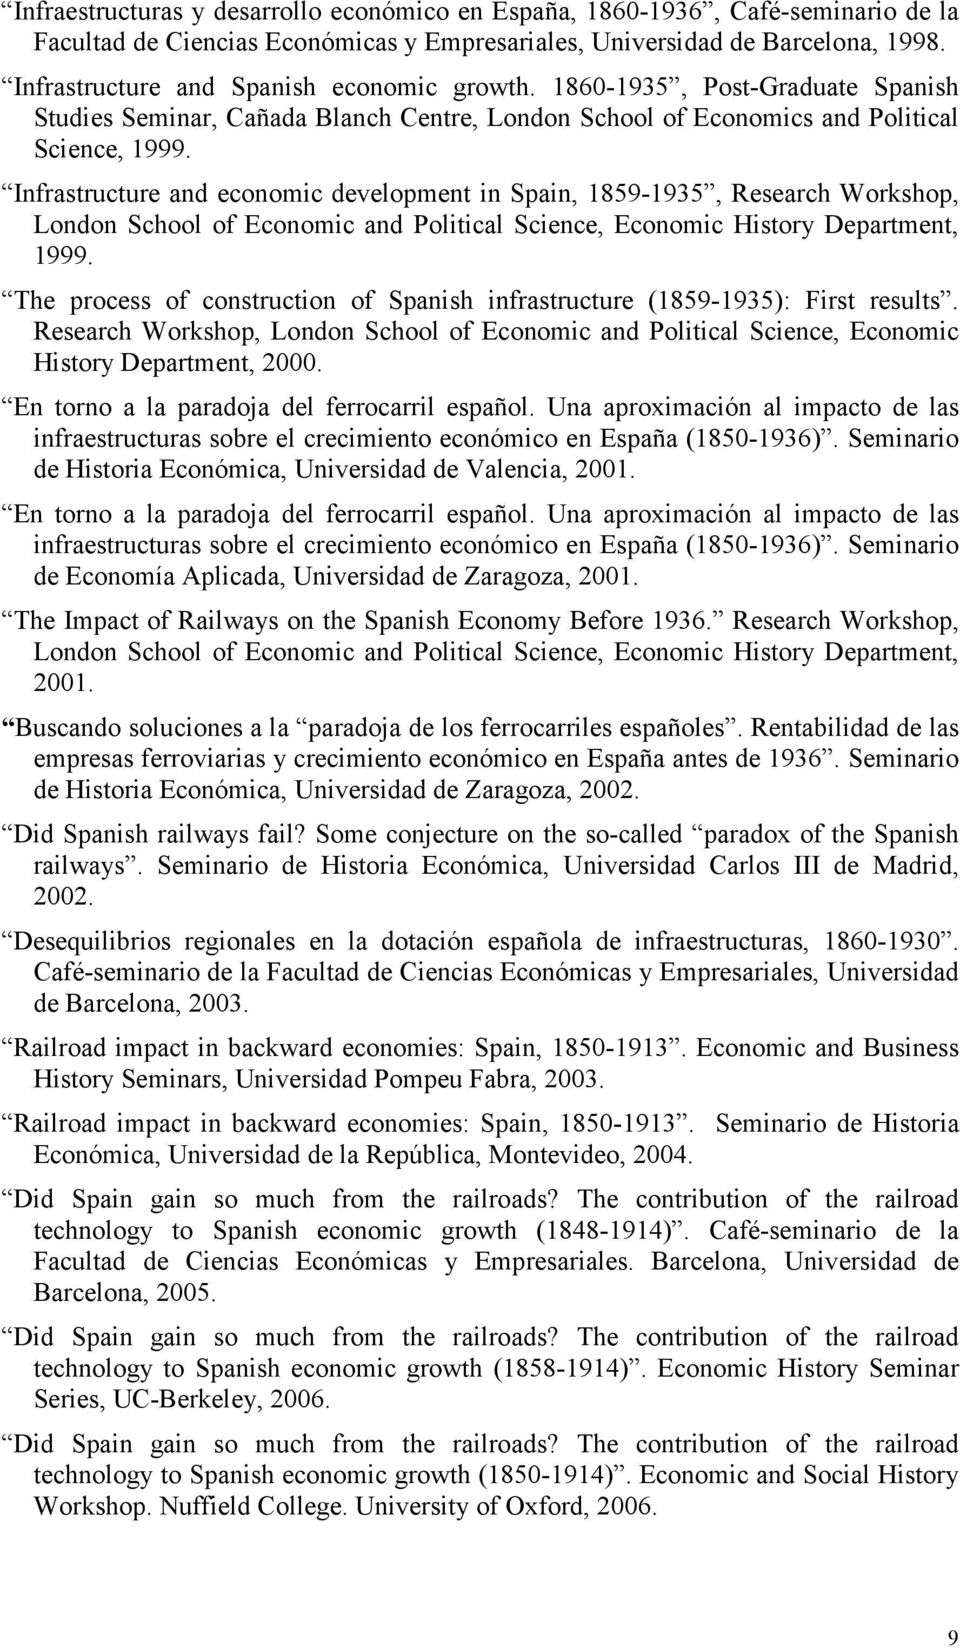 Infrastructure and economic development in Spain, 1859-1935, Research Workshop, London School of Economic and Political Science, Economic History Department, 1999.